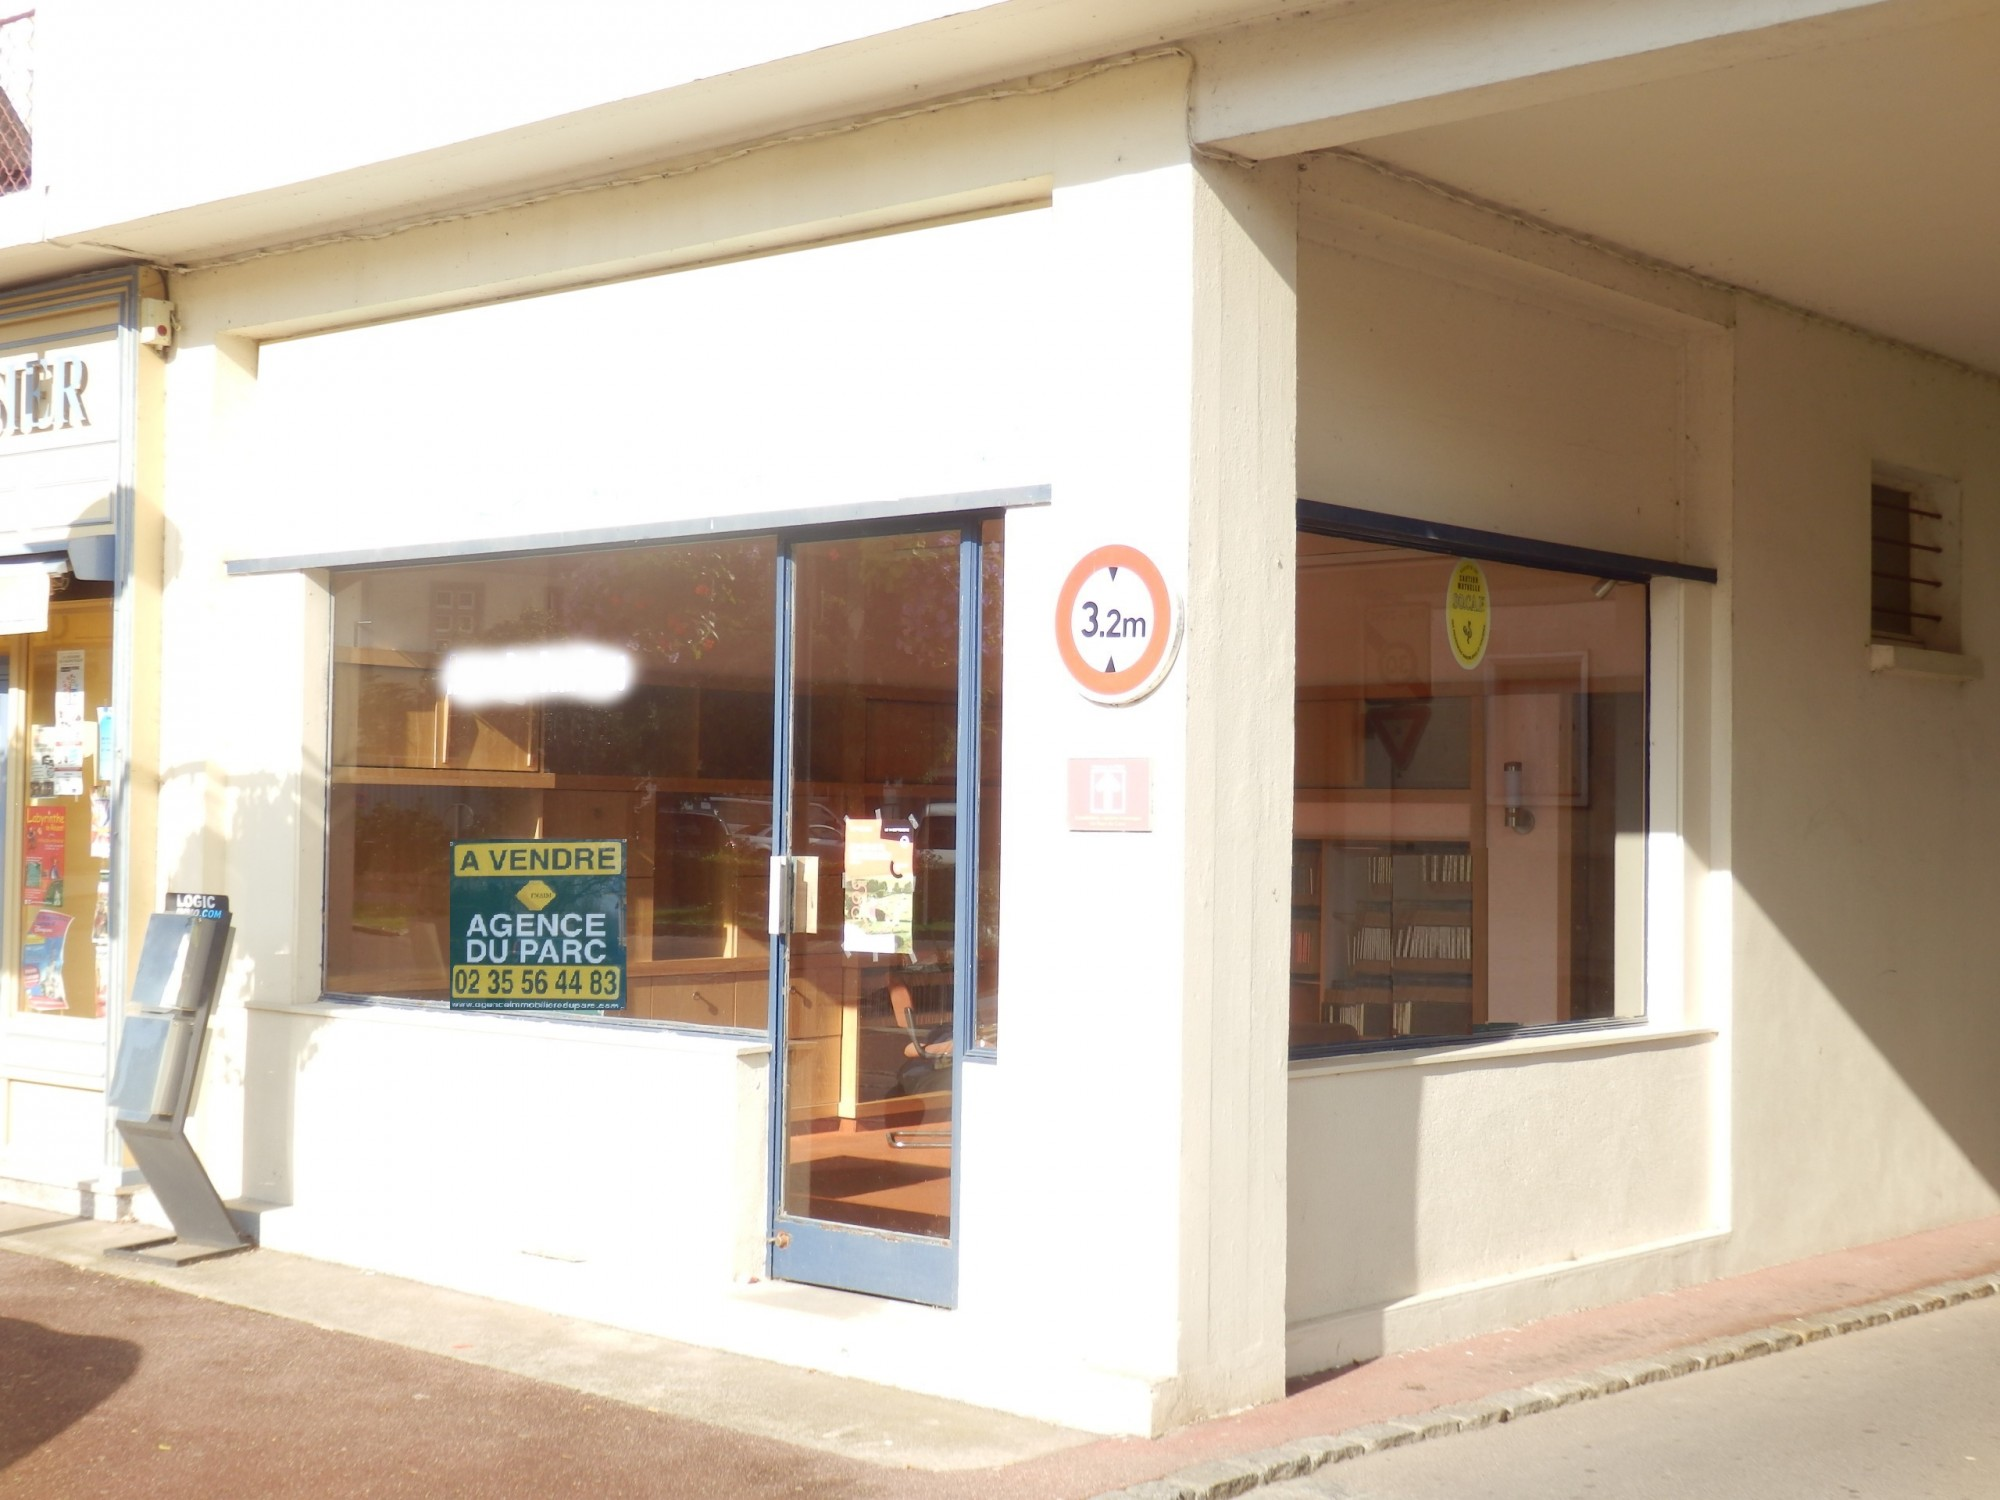 vente d'un local commercial à Caudebec en Caux